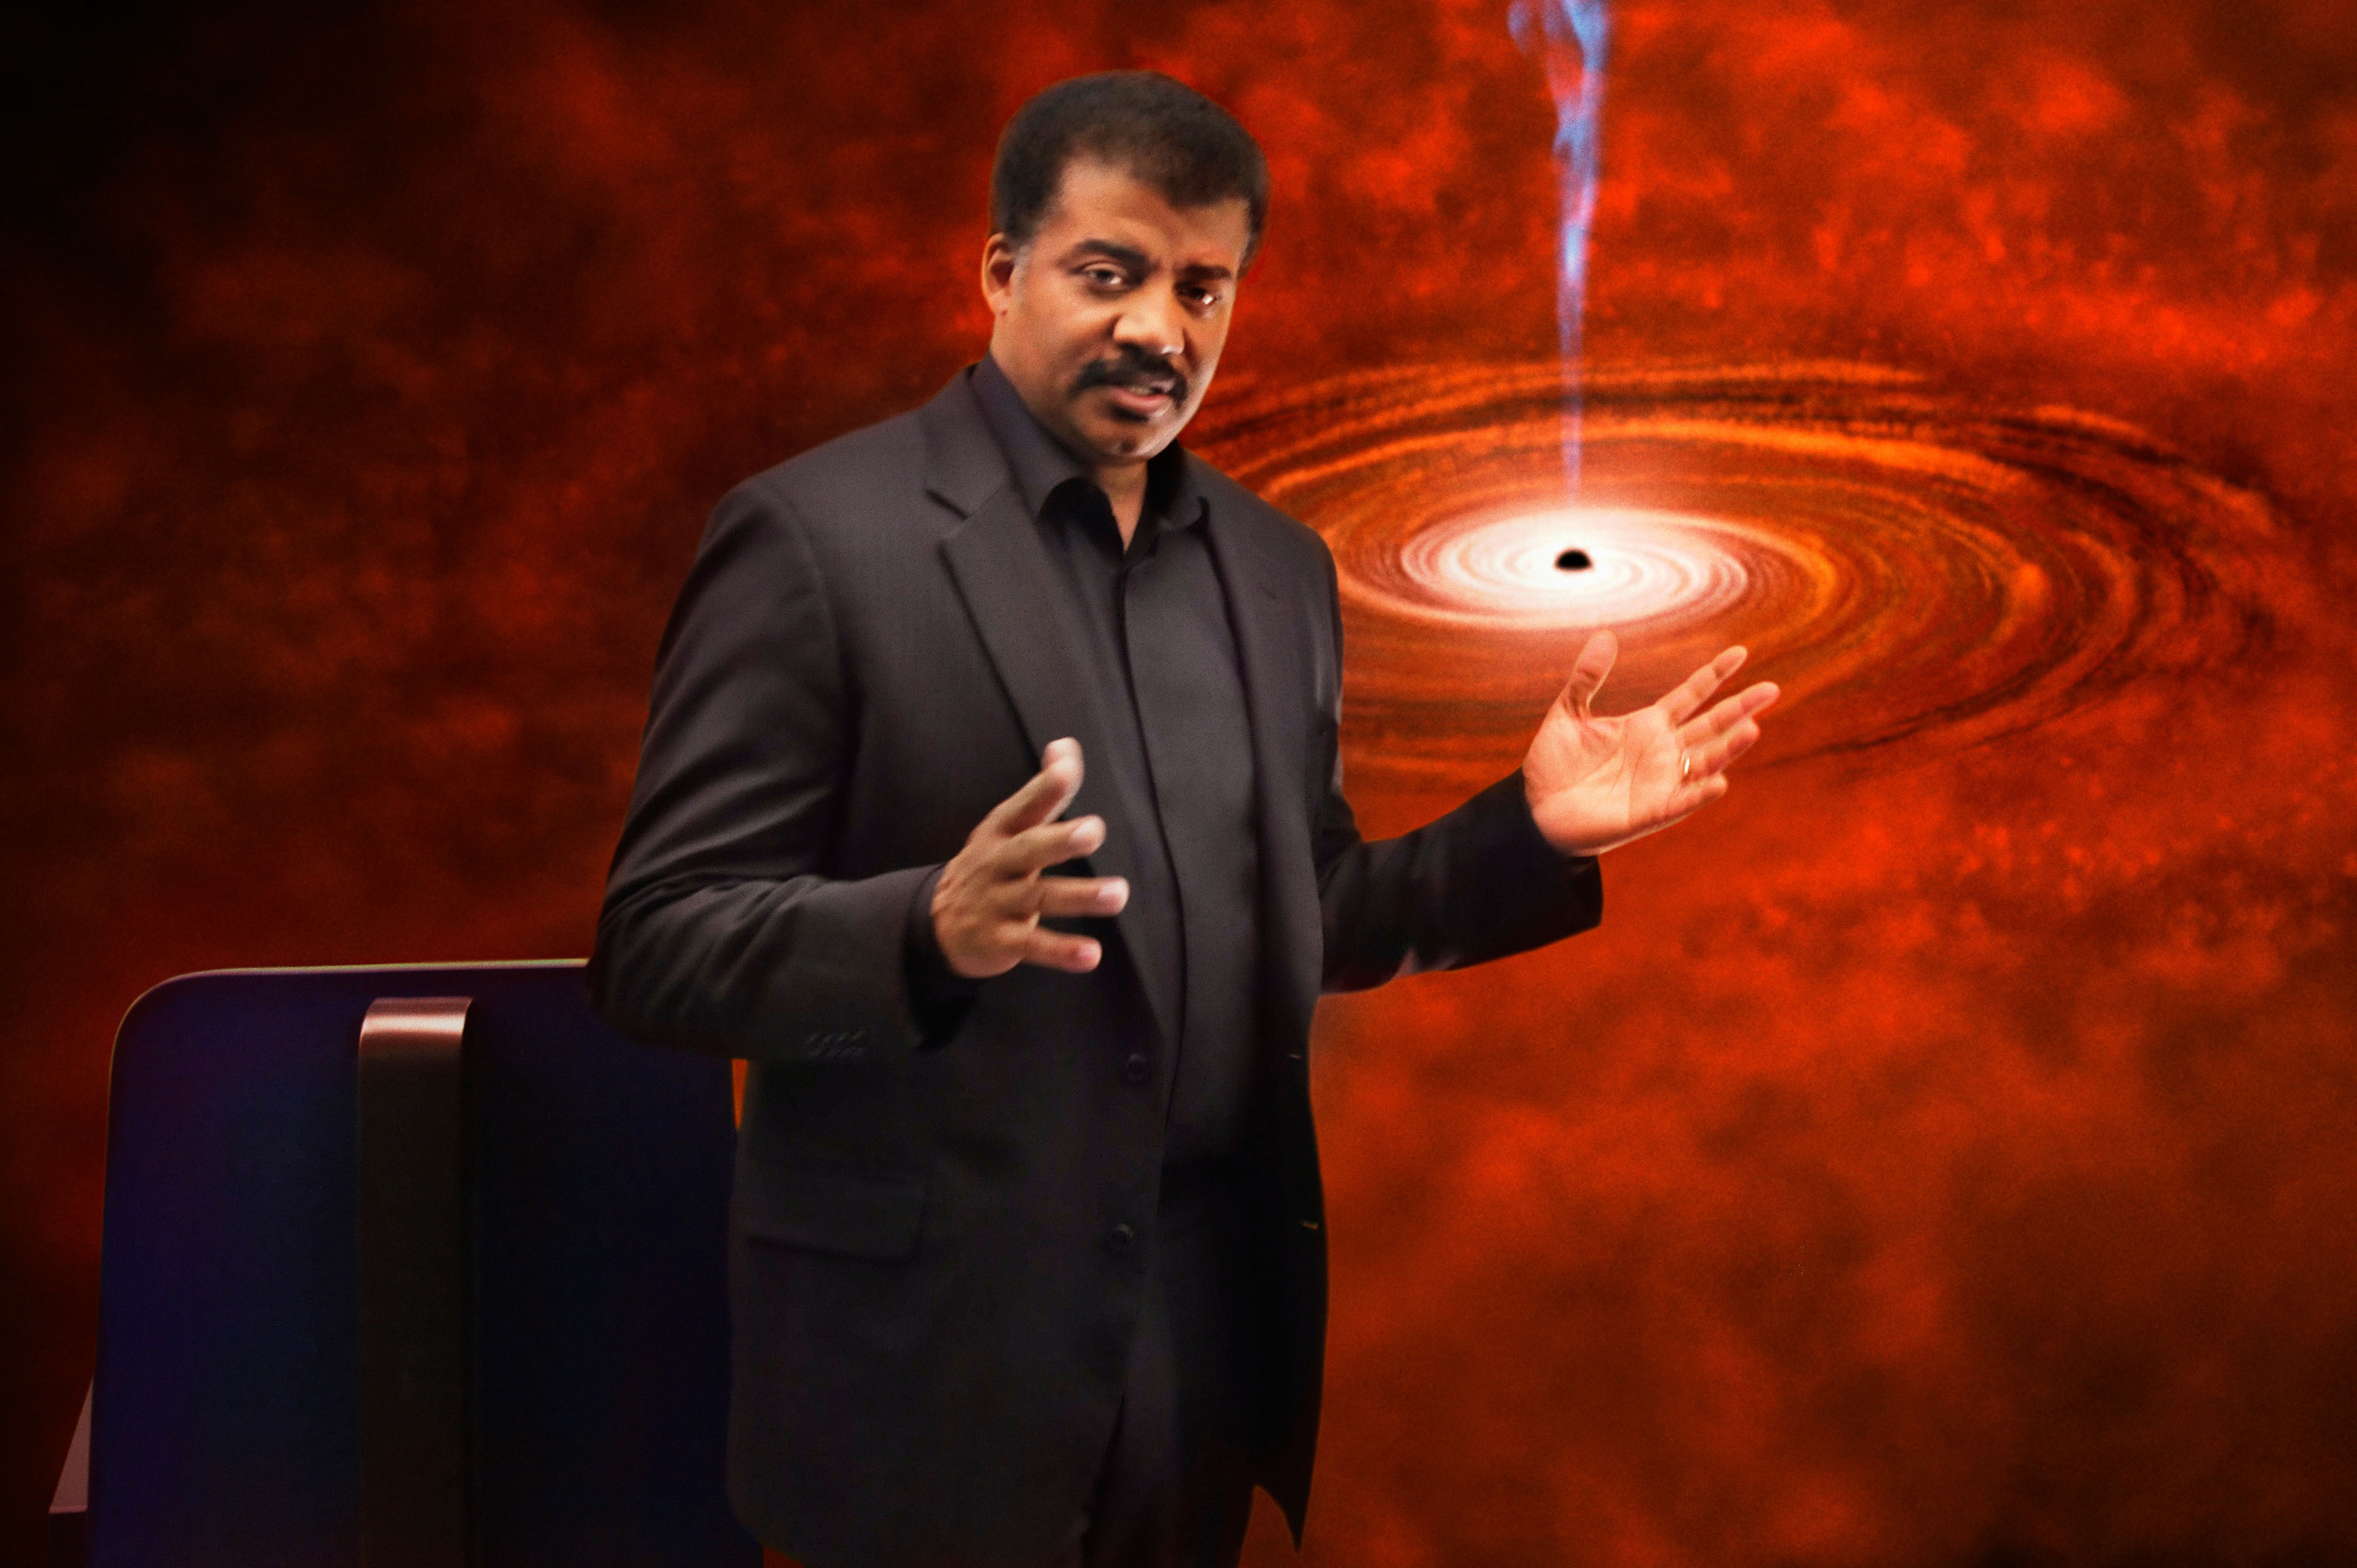 Neil dGrasse Tyson stands before a picture of outer space